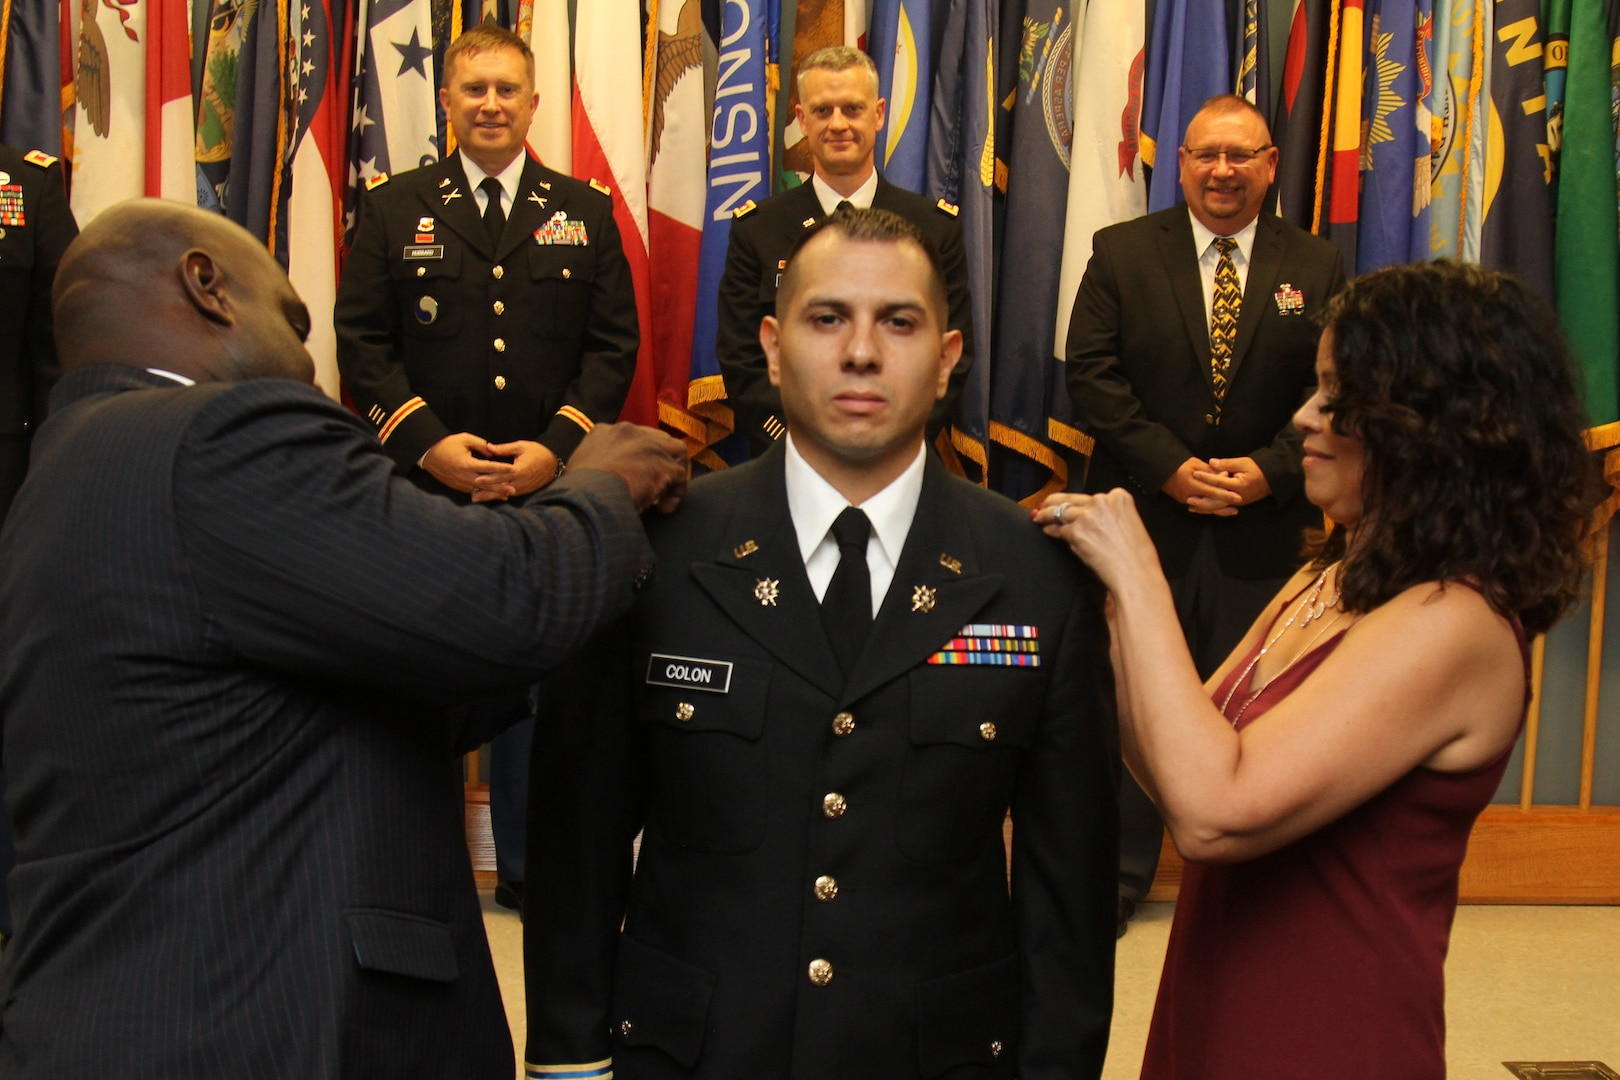 The Virginia Army National Guard welcomes 14 new lieutenants to its ranks with the commissioning of Officer Candidate School Class 60 and 61B Aug. 25, 2018, at Fort Pickett, Virginia. Class 60 was the traditional OCS program that runs nearly two years and taught by a cadre from the Fort Pickett-based 3rd Battalion, 183rd Regiment, Regional Training Institute, and Class 61B was the eight-week Accelerated OCS program at Fort McClellan, Alabama. The ceremony marked the end of a journey for the candidates as they took their oaths of office, received their OCS diplomas and their second lieutenant bars and delivered their first salute as new officers. (U.S. Army National Guard photo by Staff Sgt. Matt Lyman)